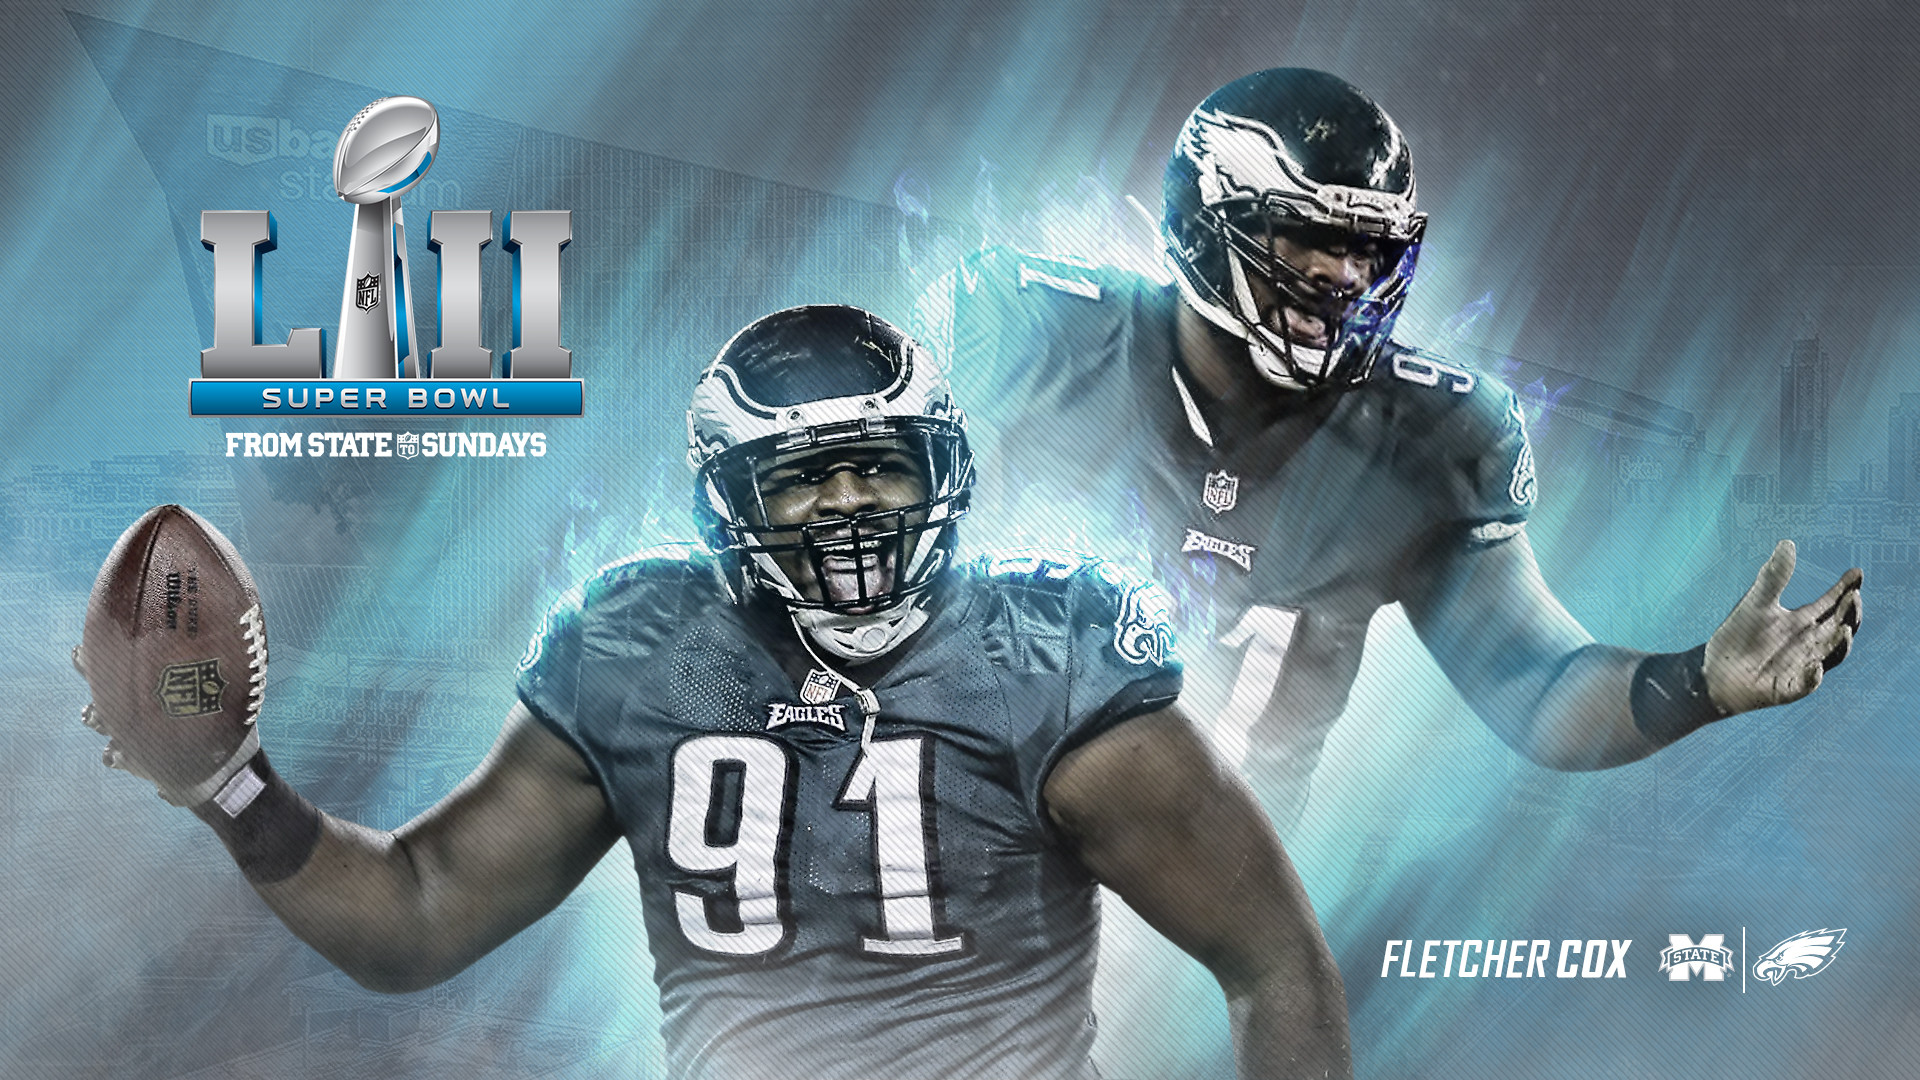 1920x1080 Eagles Super Bowl Wallpaper Gallery. Philadelphia ...